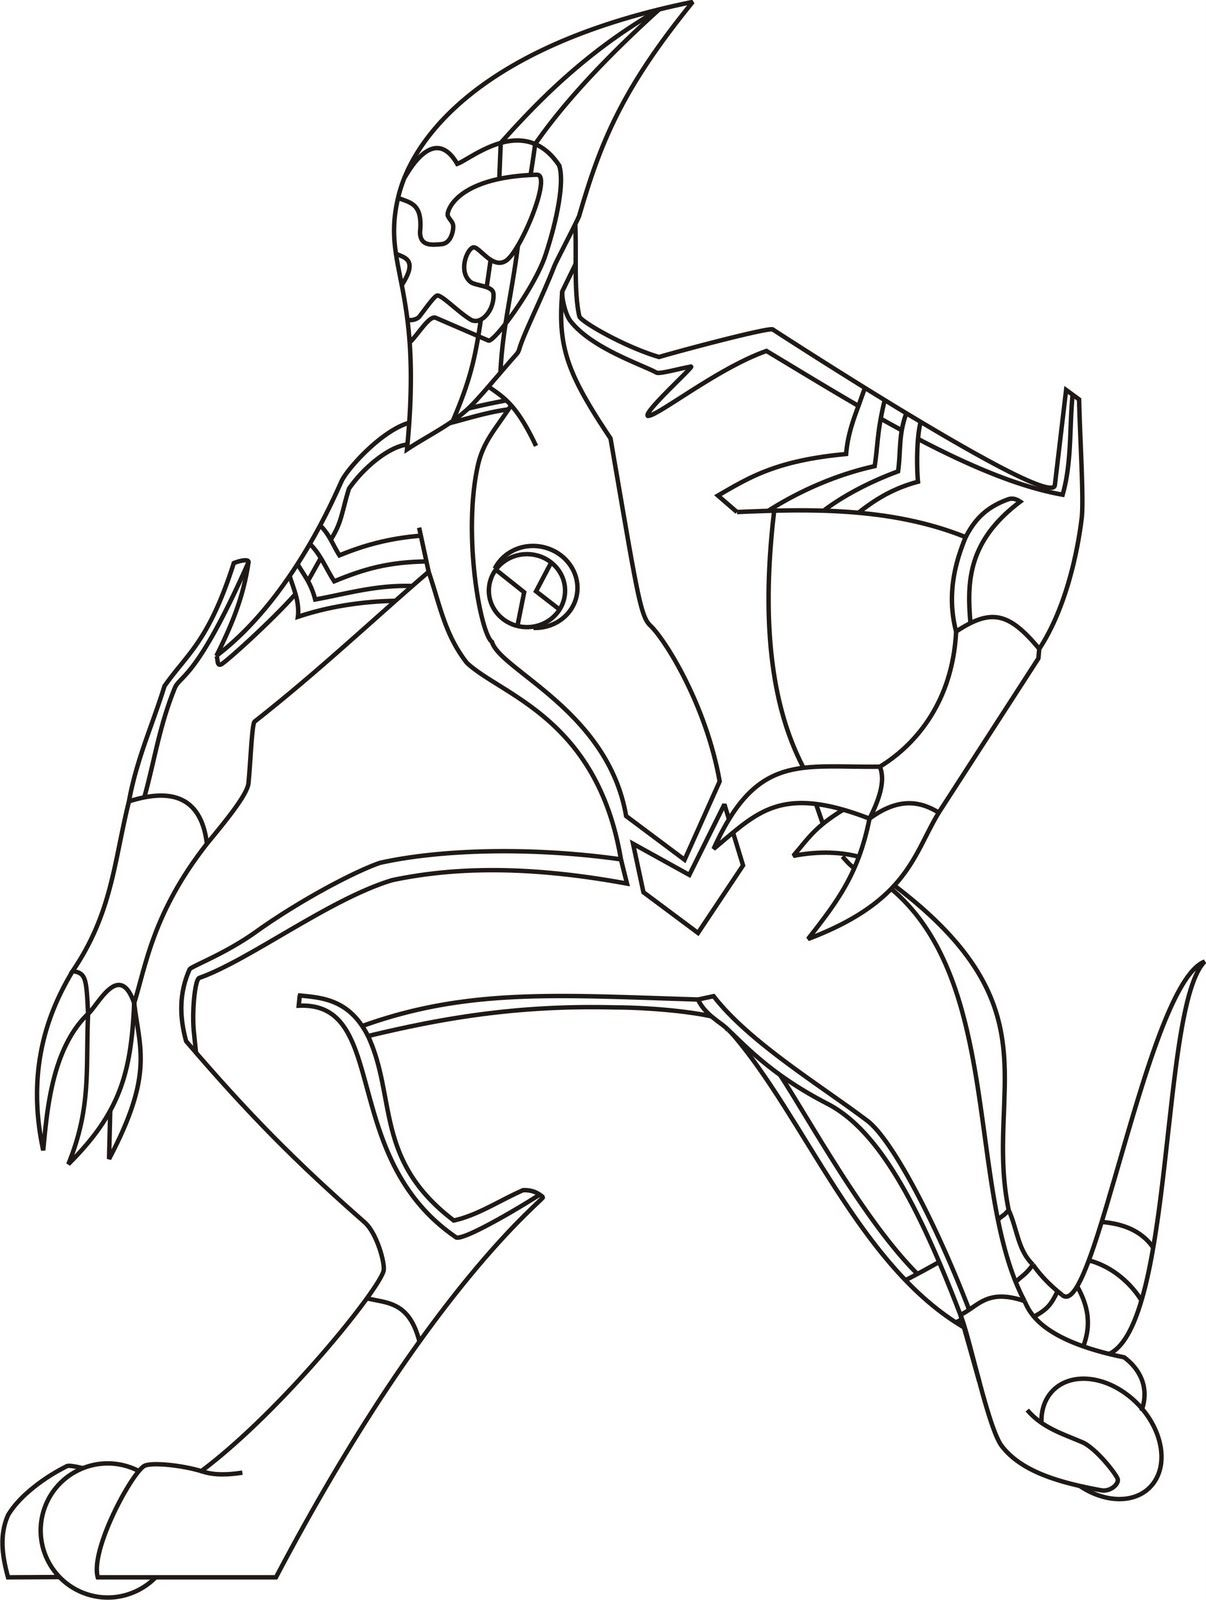 Ben 10 Heatblast Is Ready To Attack Coloring Page Minion Coloring Pages Coloring Pages Online Coloring Pages